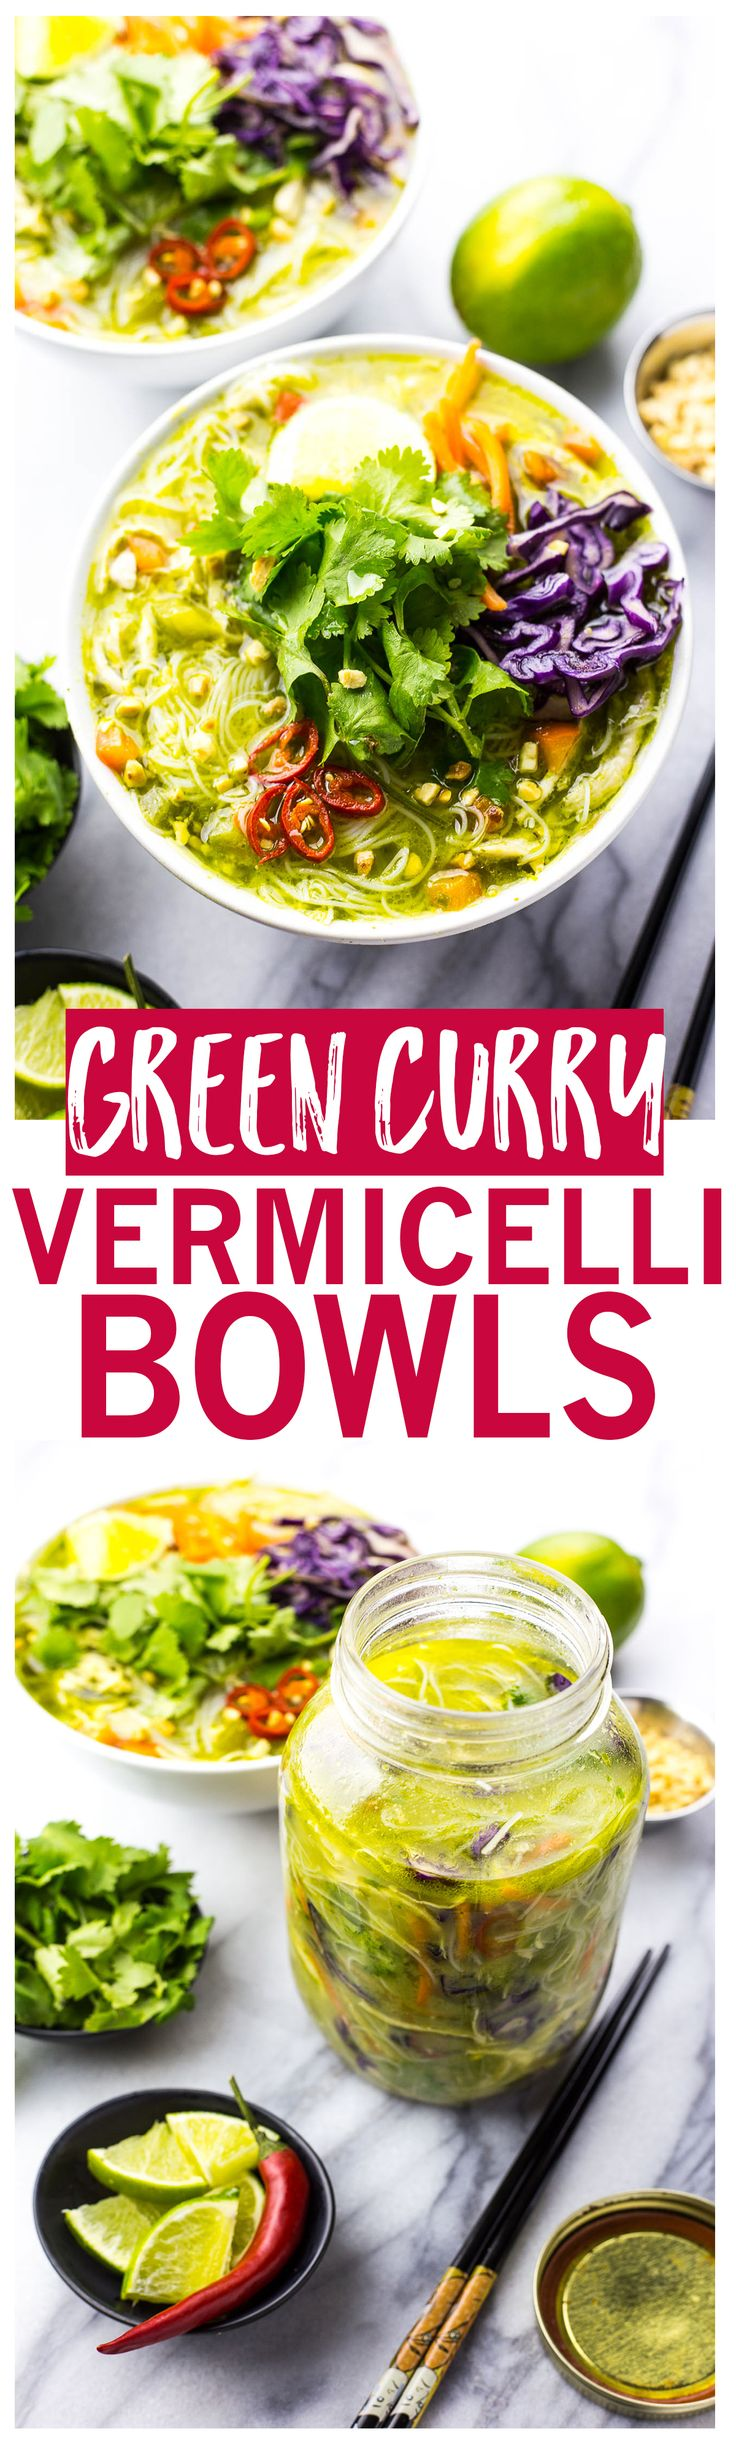 Thai Green Curry Chicken Vermicelli Bowls are a delicious, spicy noodle soup!